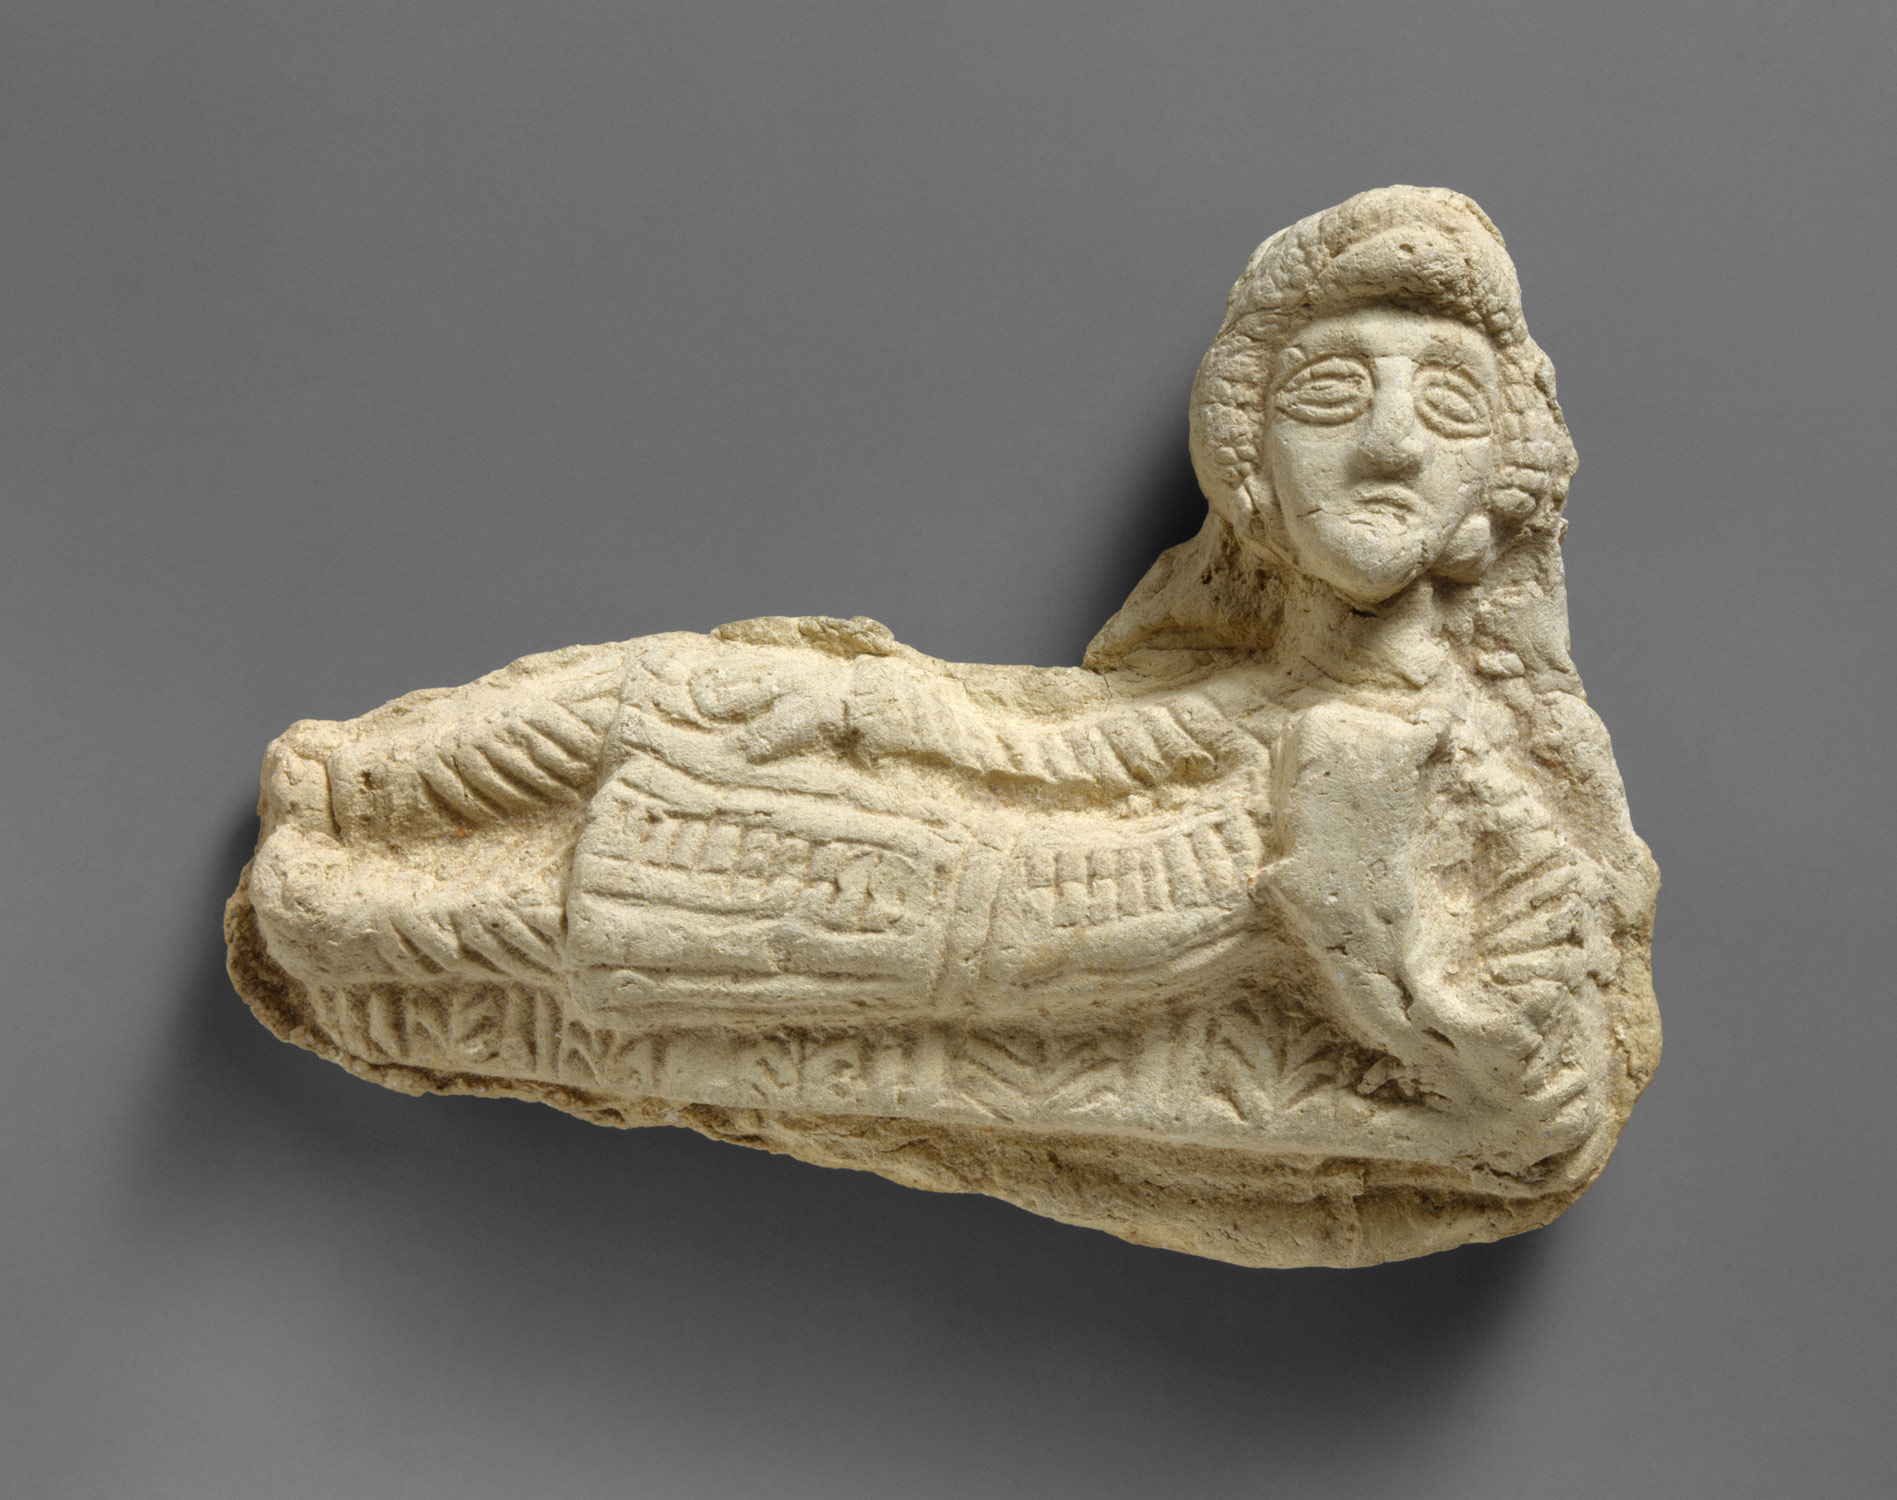 Plaque in the form of a reclining man